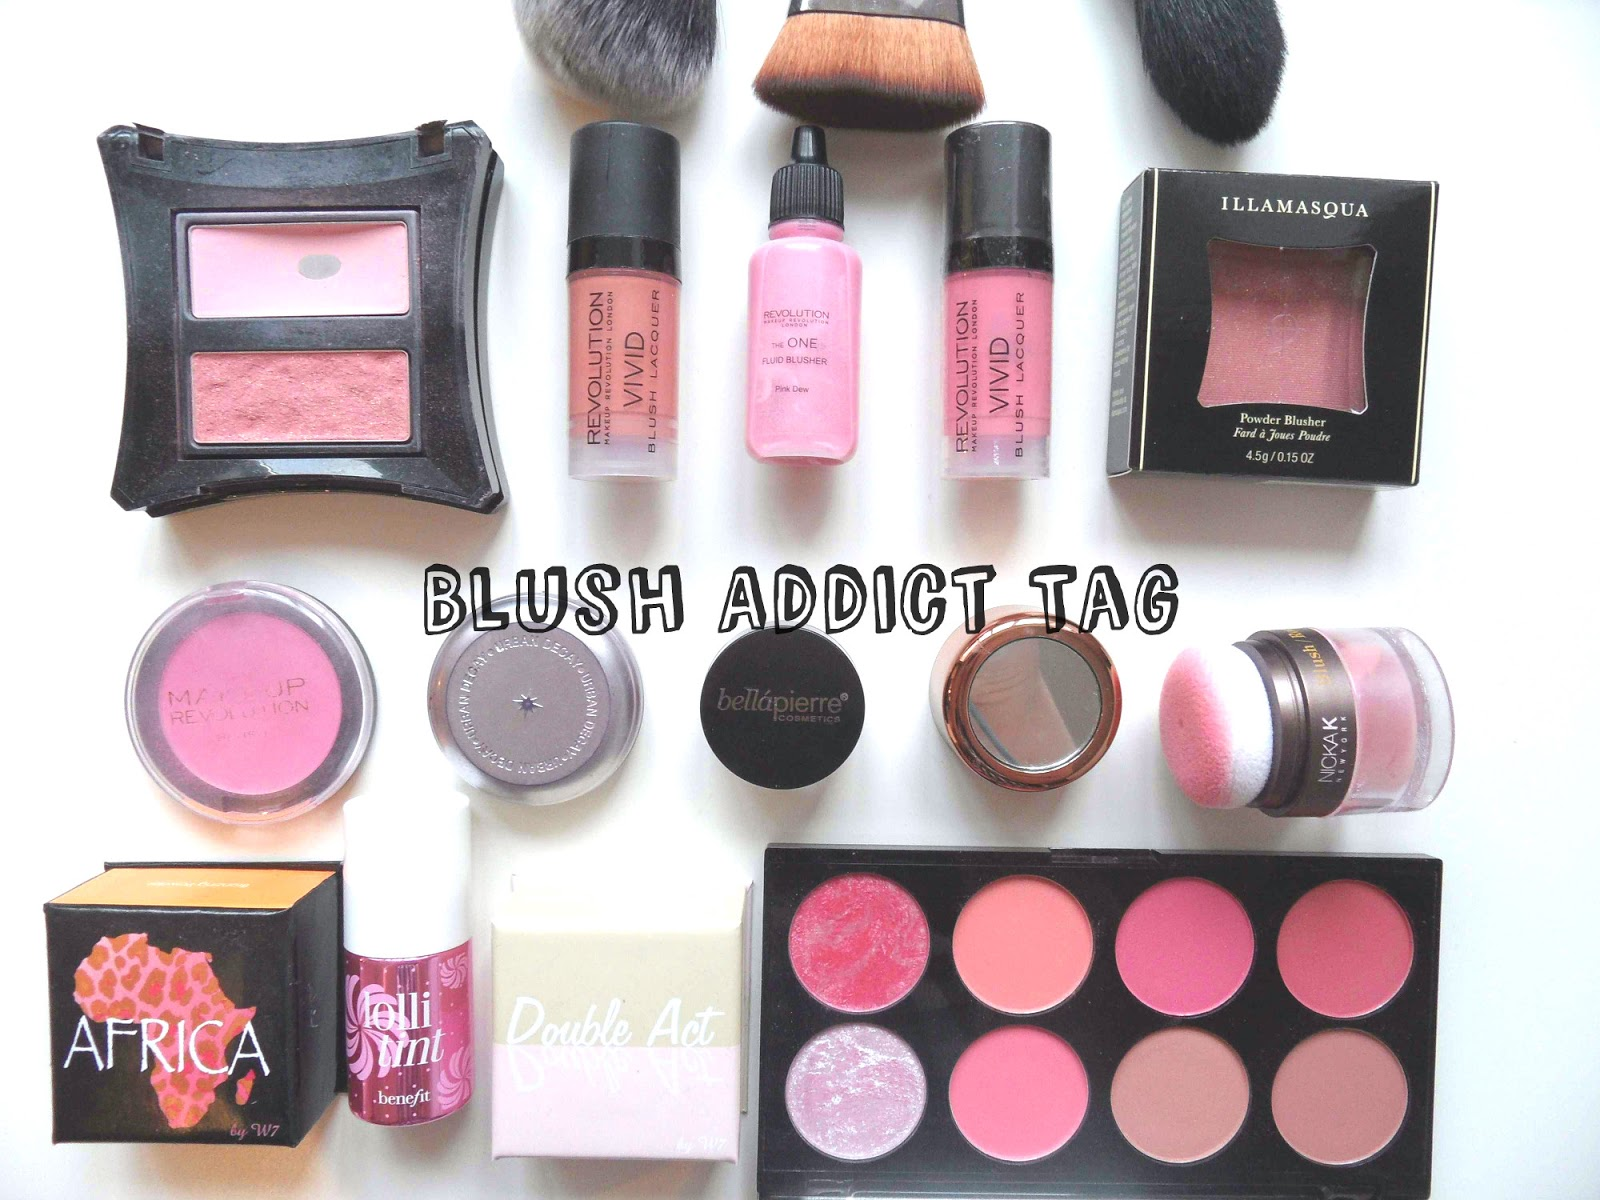 Eyelinerflicks Blush Addict Tag,